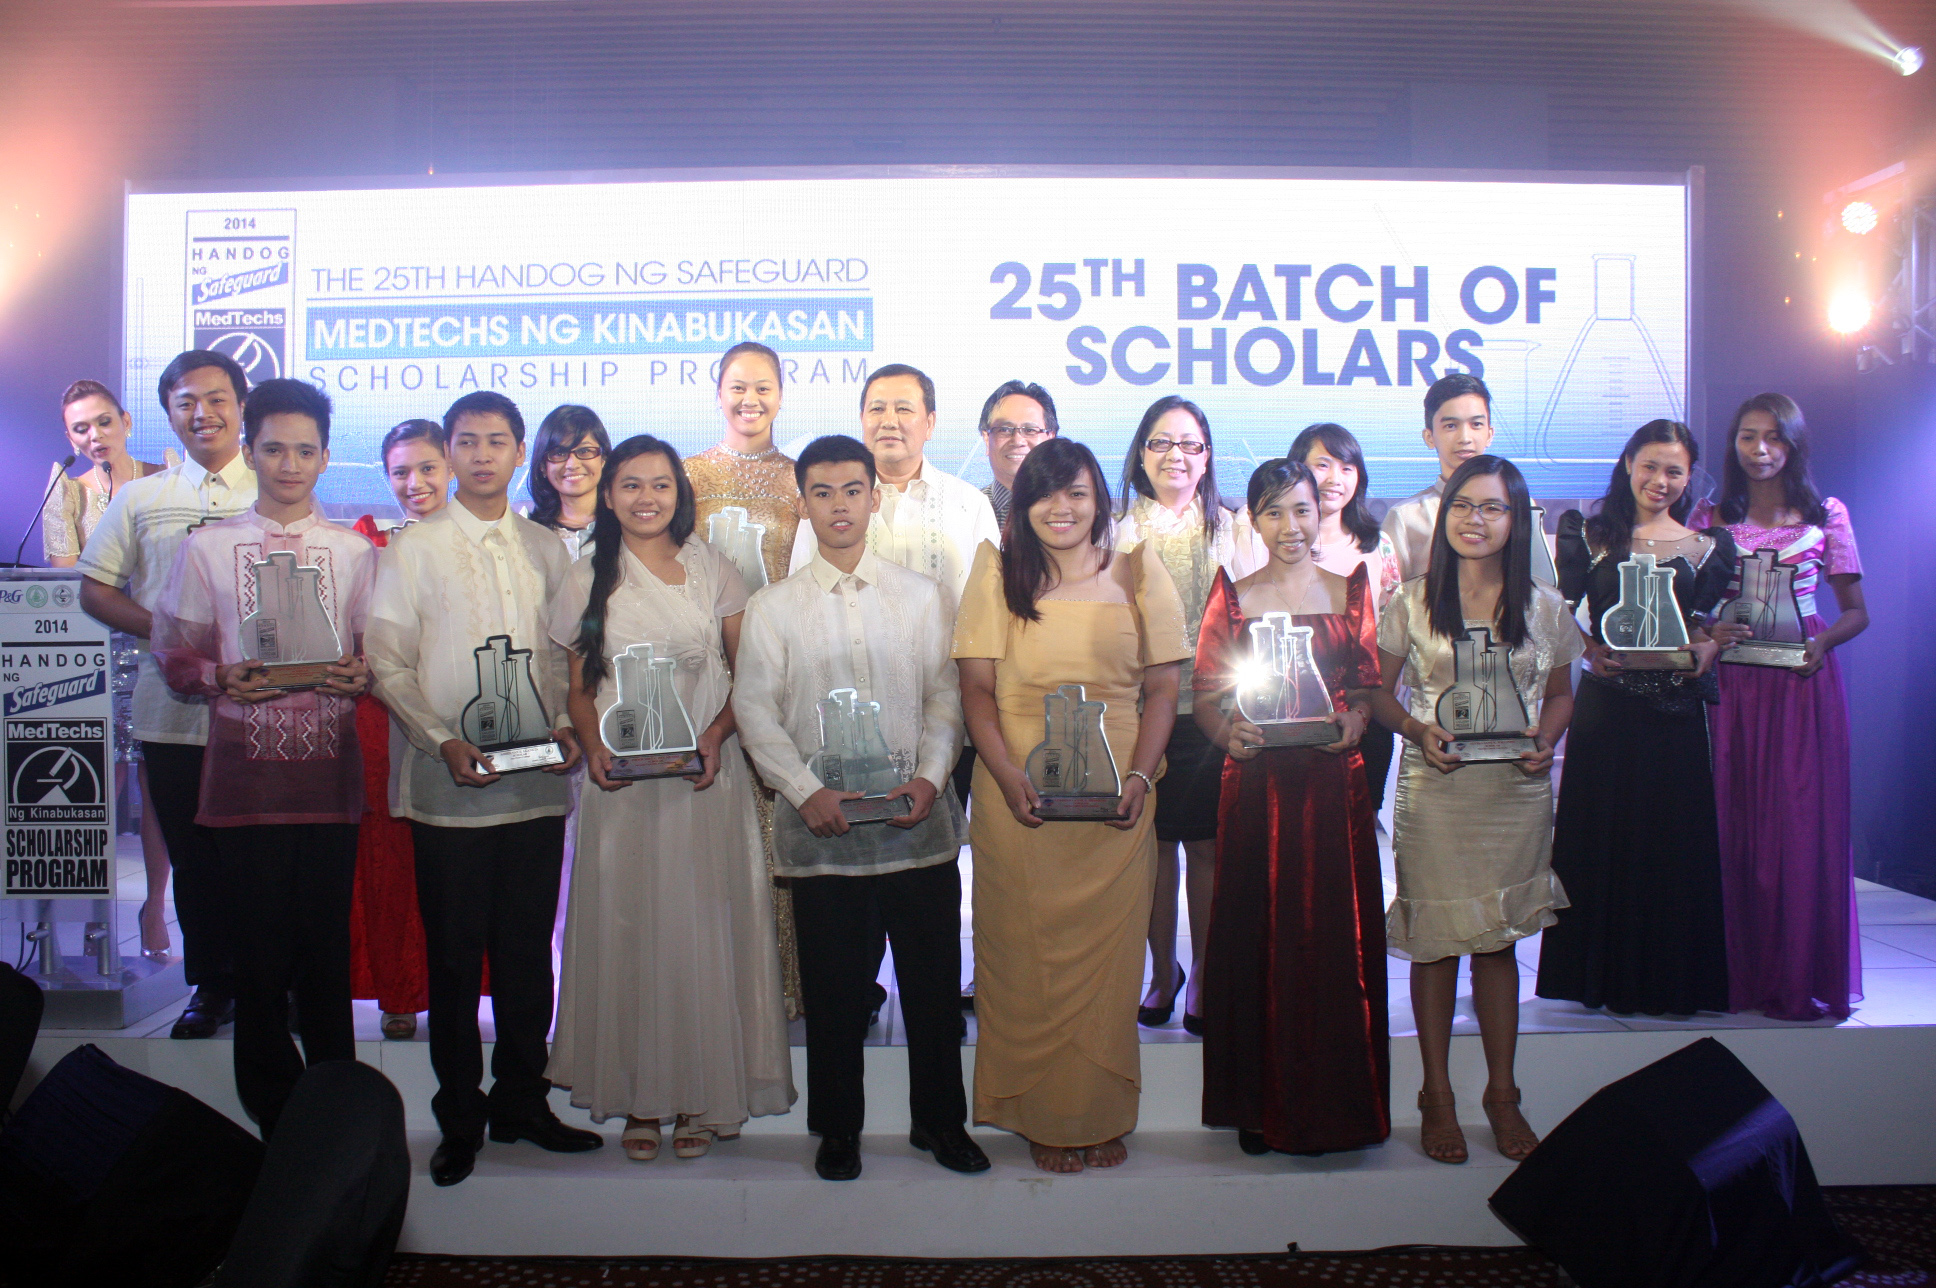 "In 1989, Safeguard partnered with PAMET for the first ""Handog ng Safeguard: MedTechs ng Kinabukasan"" Scholarship Program. Each year, Safeguard and PAMET support intellectually gifted by financially needy Medical Technology students. To date, they have awarded over 300 scholarships."